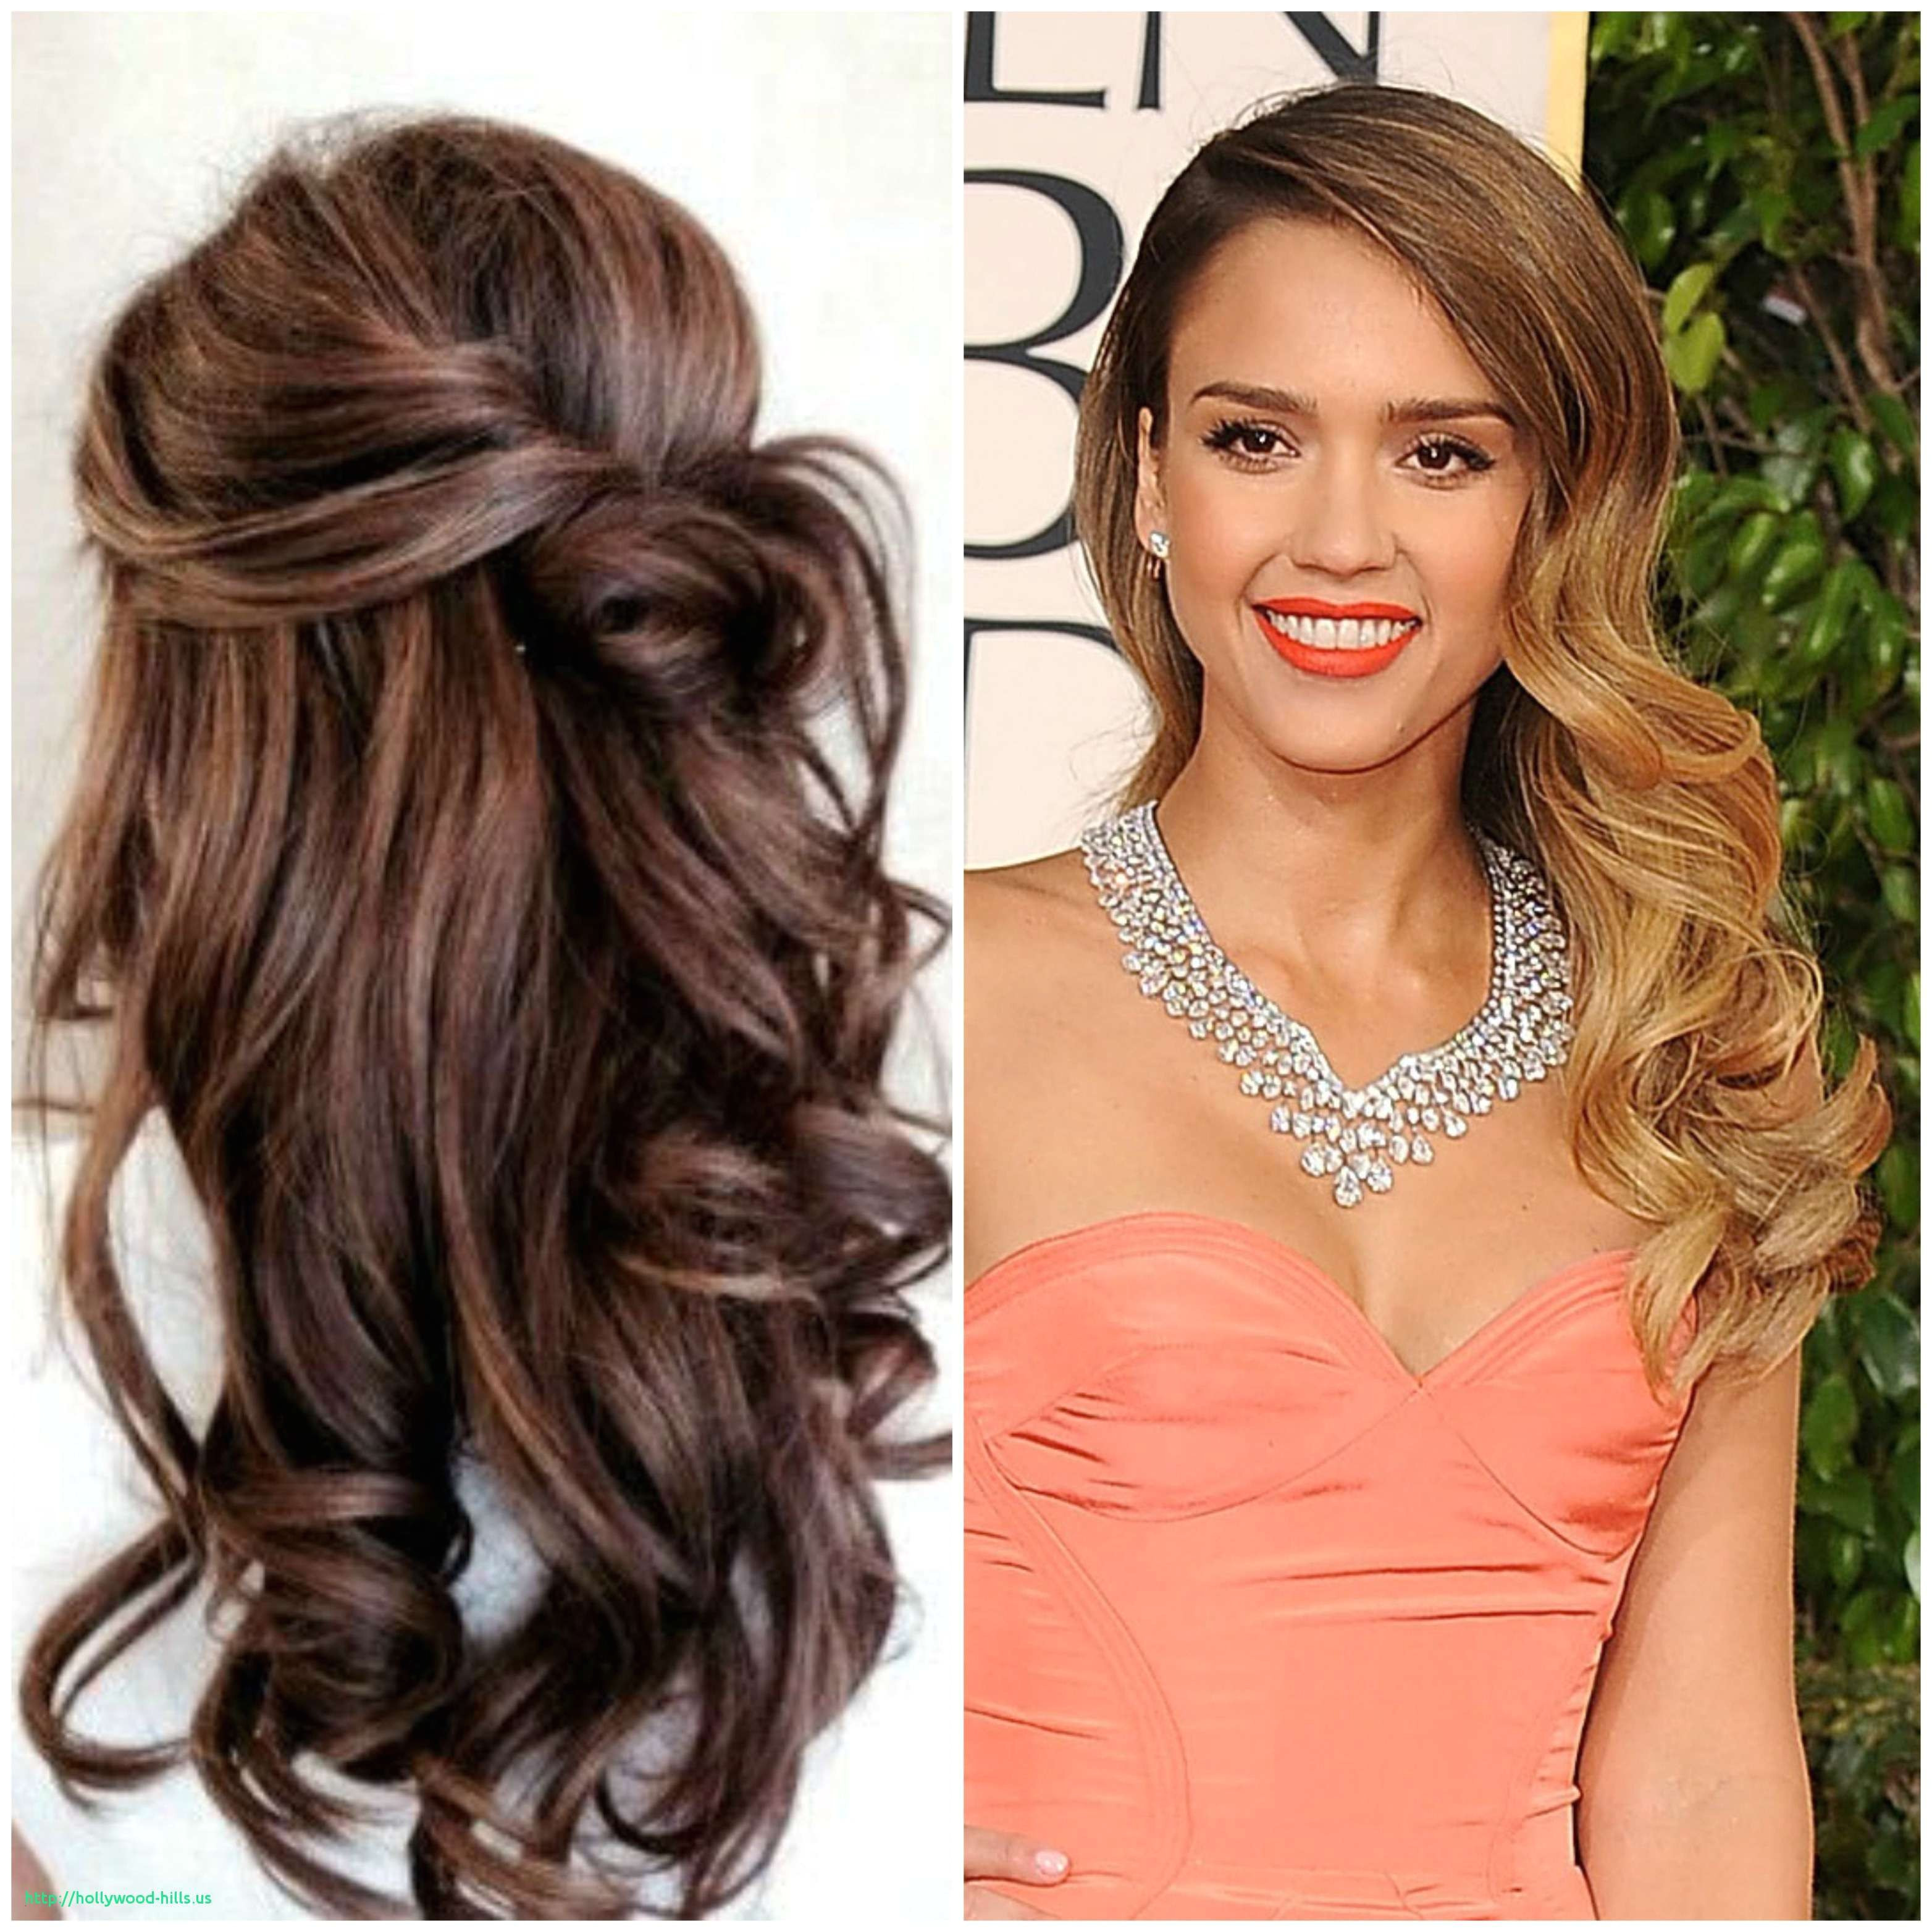 1920 Girl Hairstyles Fresh 1920s Hairstyles for Long Hair Gallery Unique Bob Hairstyle 1920 1920